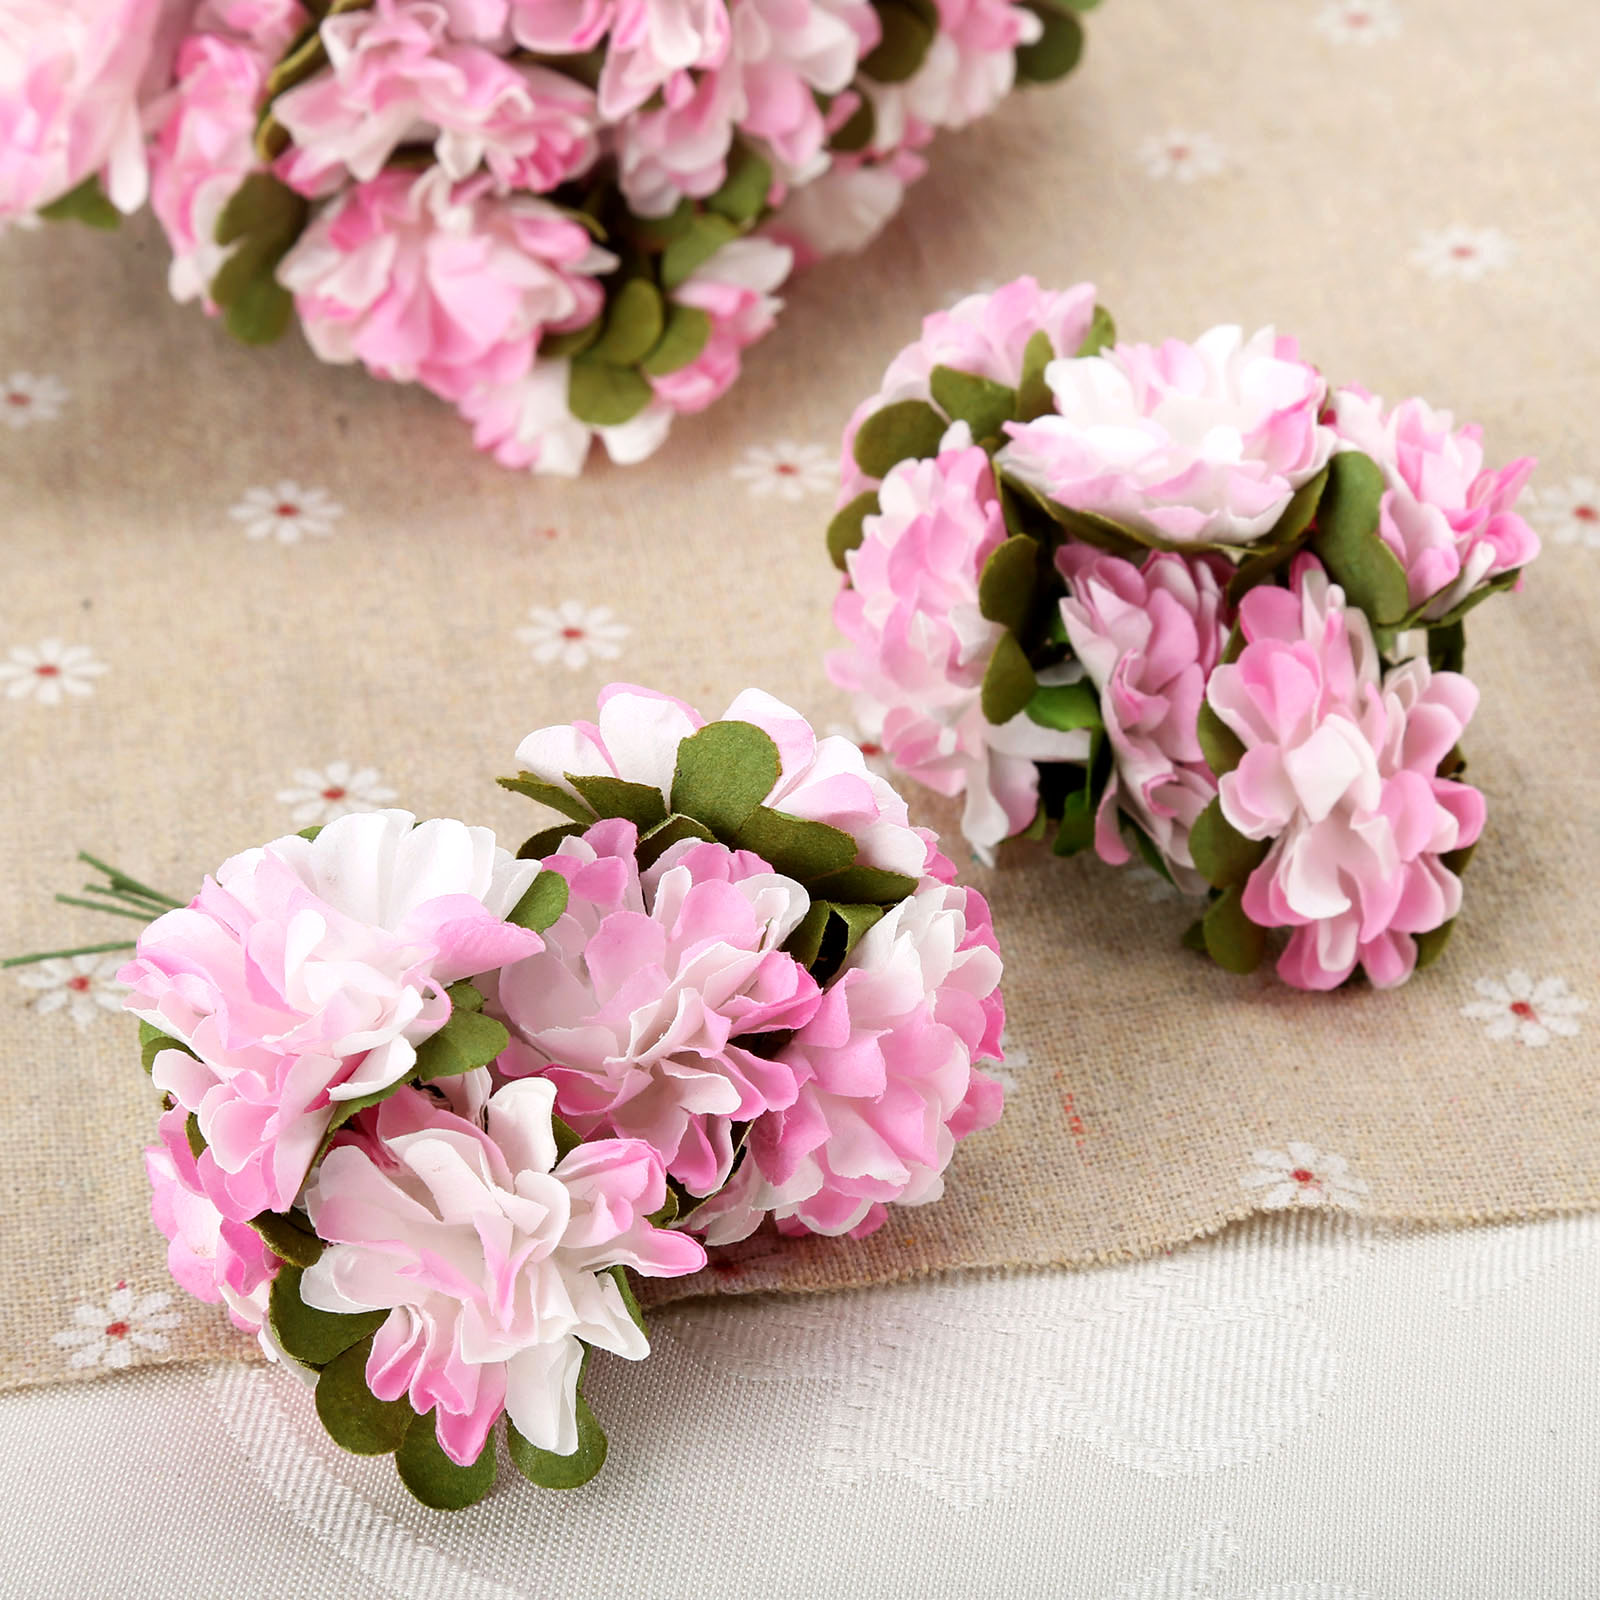 Paper flower carnations stamen artificial flower bouquet for wedding paper flower carnations stamen artificial flower bouquet for wedding decoration diy scrapbooking fake flower in artificial dried flowers from home izmirmasajfo